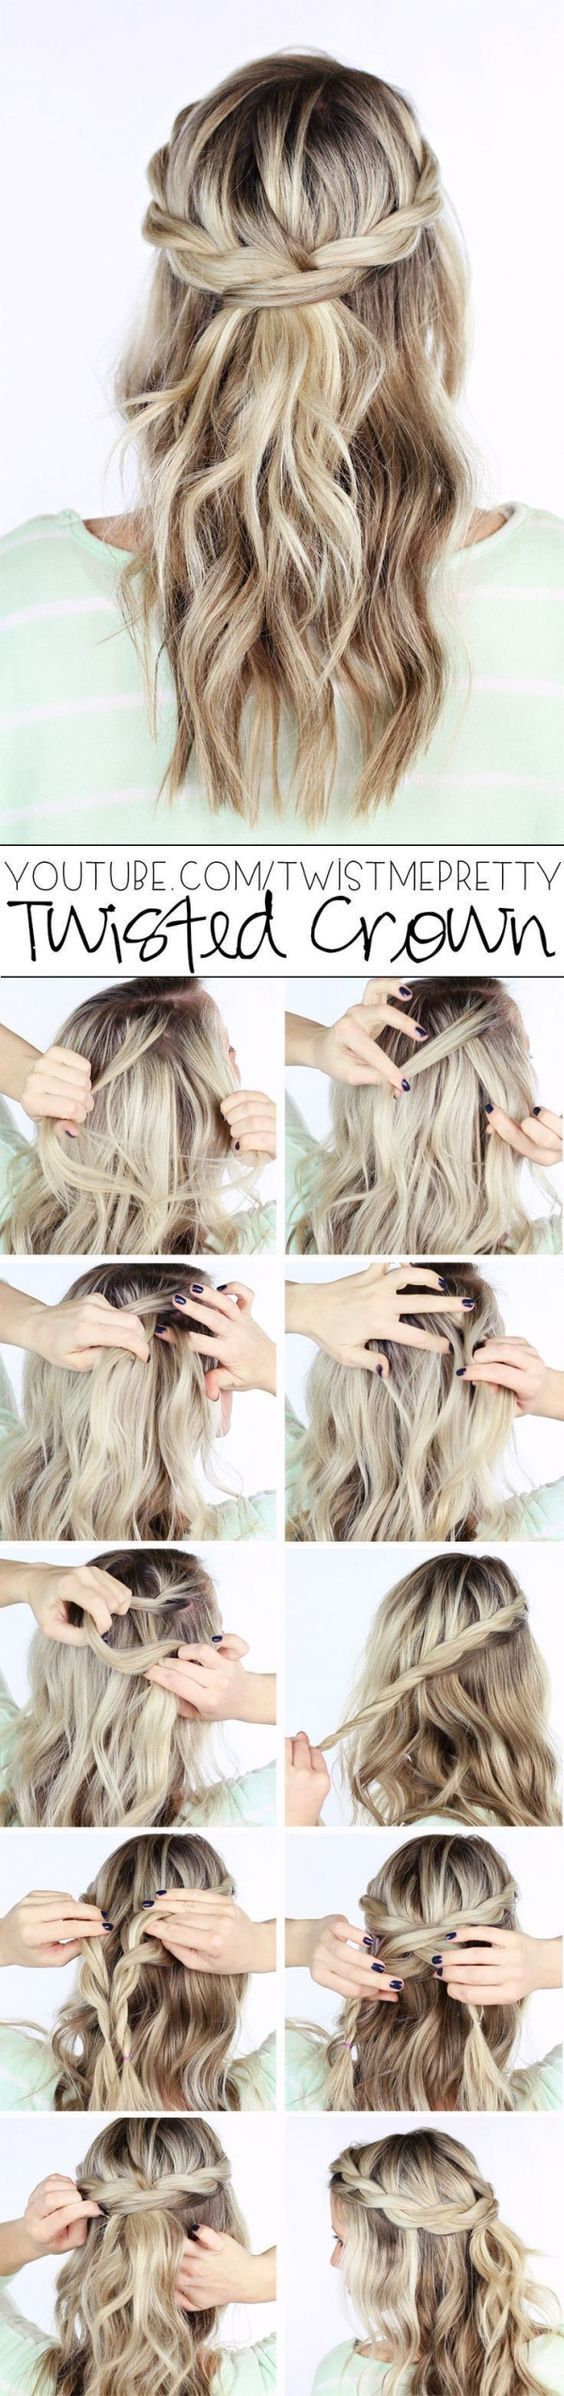 316 best Hair Styles images on Pinterest | Long hair, Hair cuts and ...